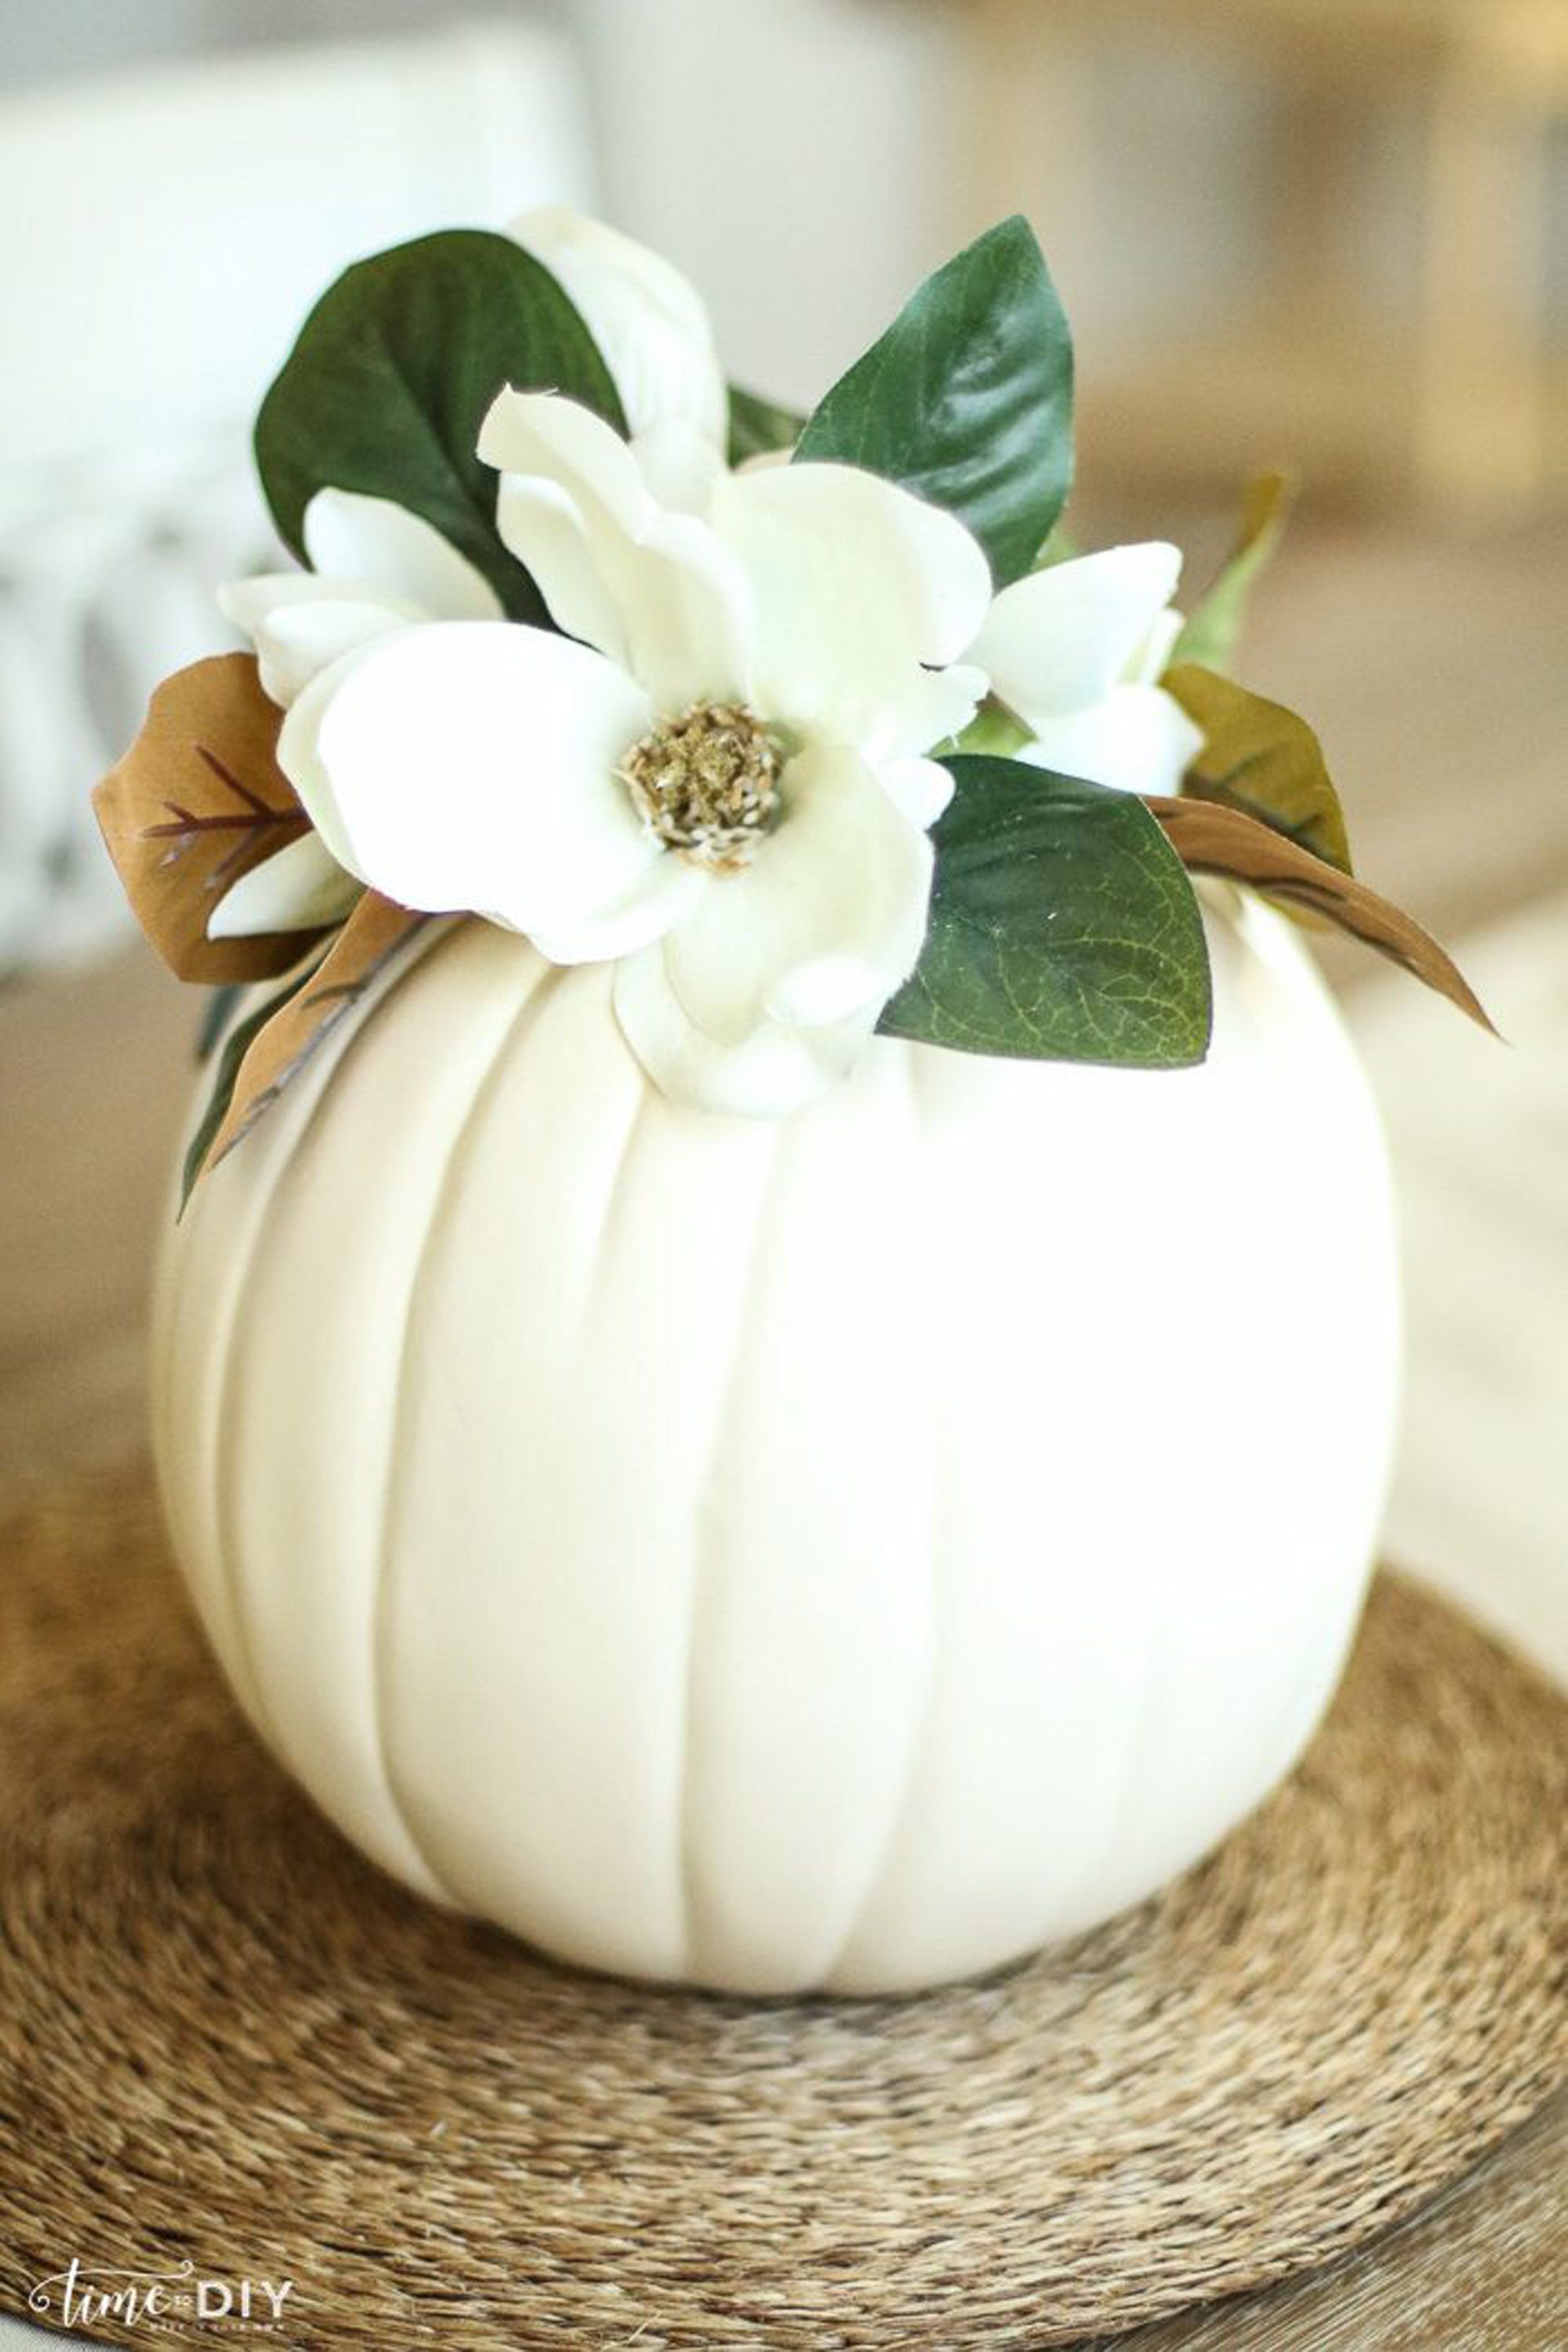 35 Best Fall Crafts - Easy DIY Home Decor Ideas for Fall